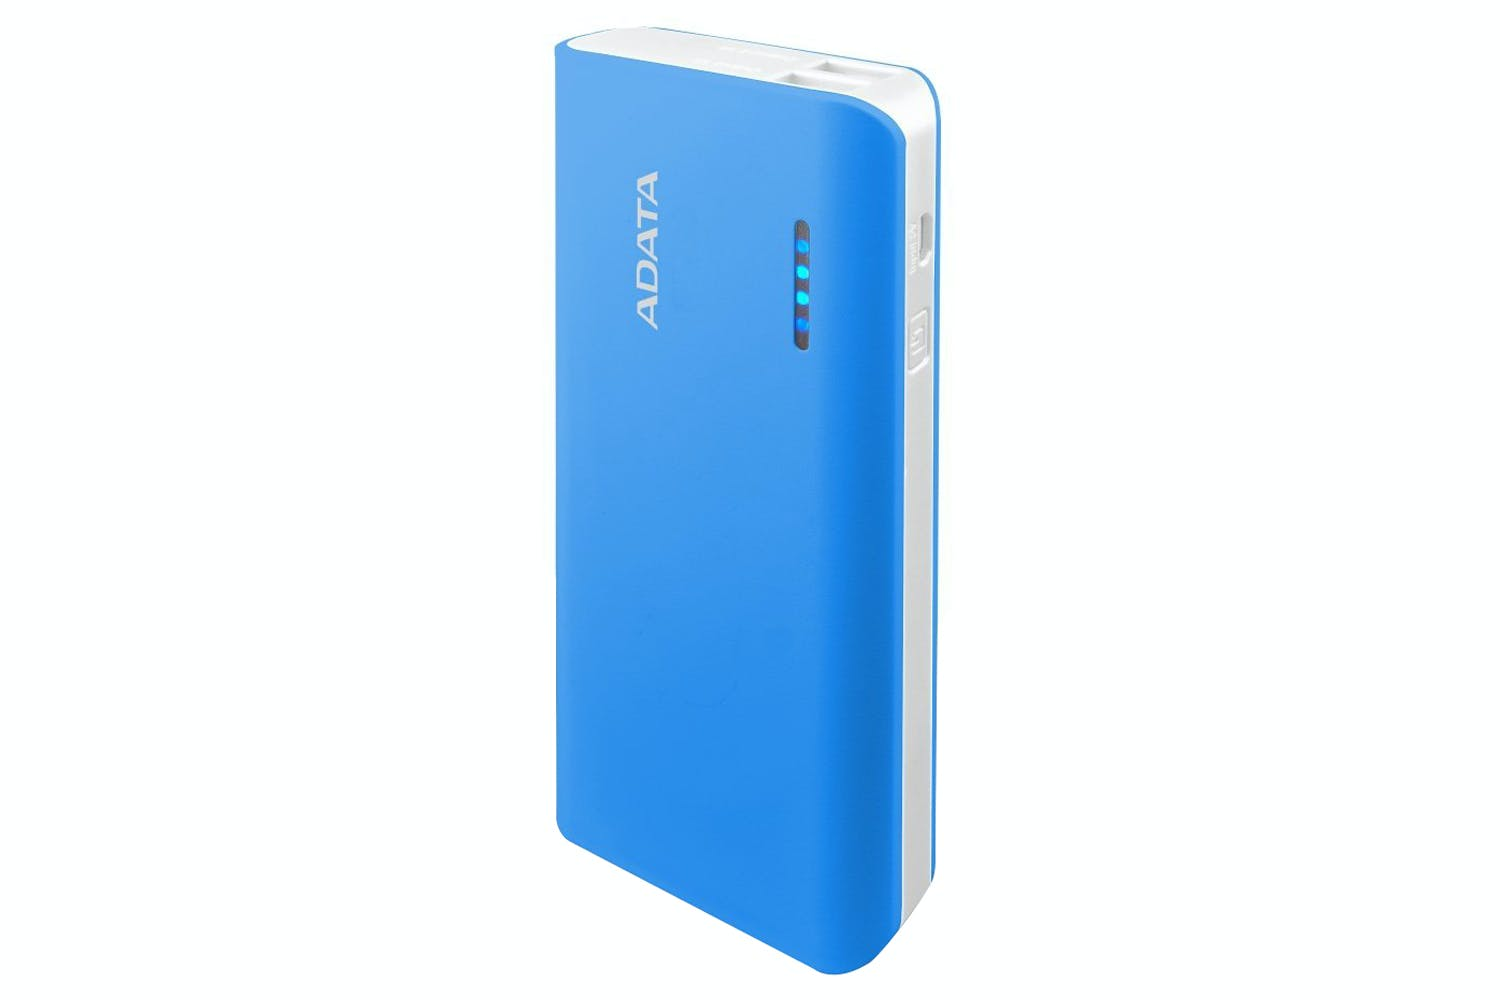 ADATA PT100 Power Bank | Blue/White